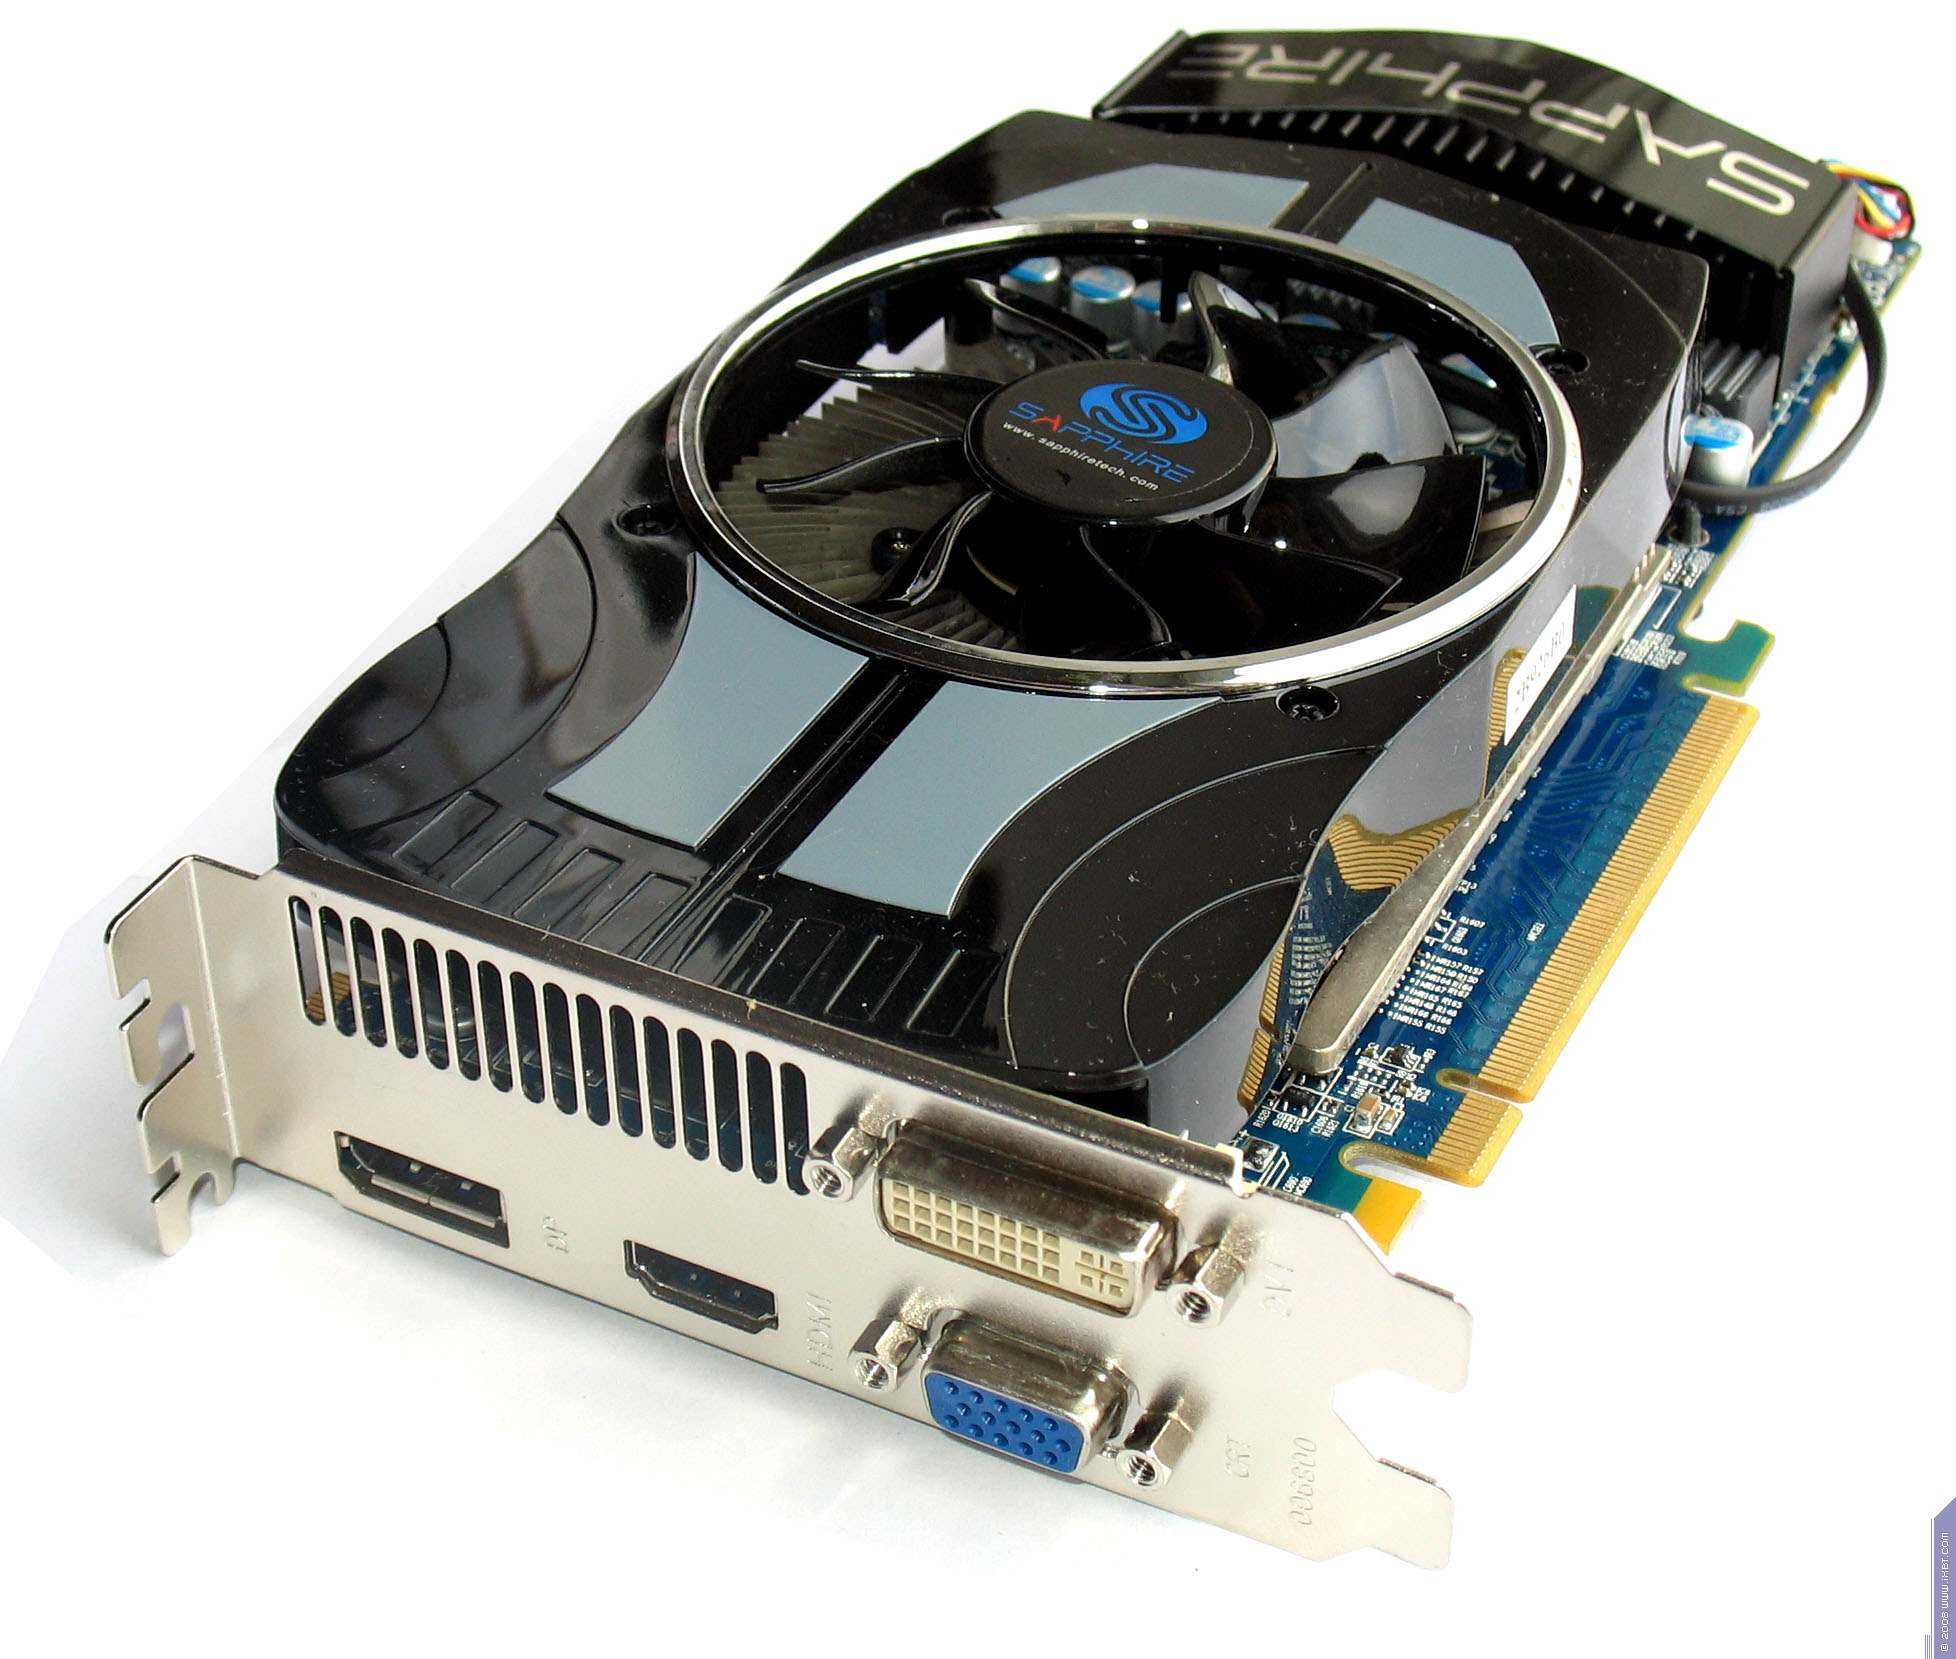 ixbt labs ati radeon hd 4890 from sapphire and msi page 1 introduction design. Black Bedroom Furniture Sets. Home Design Ideas